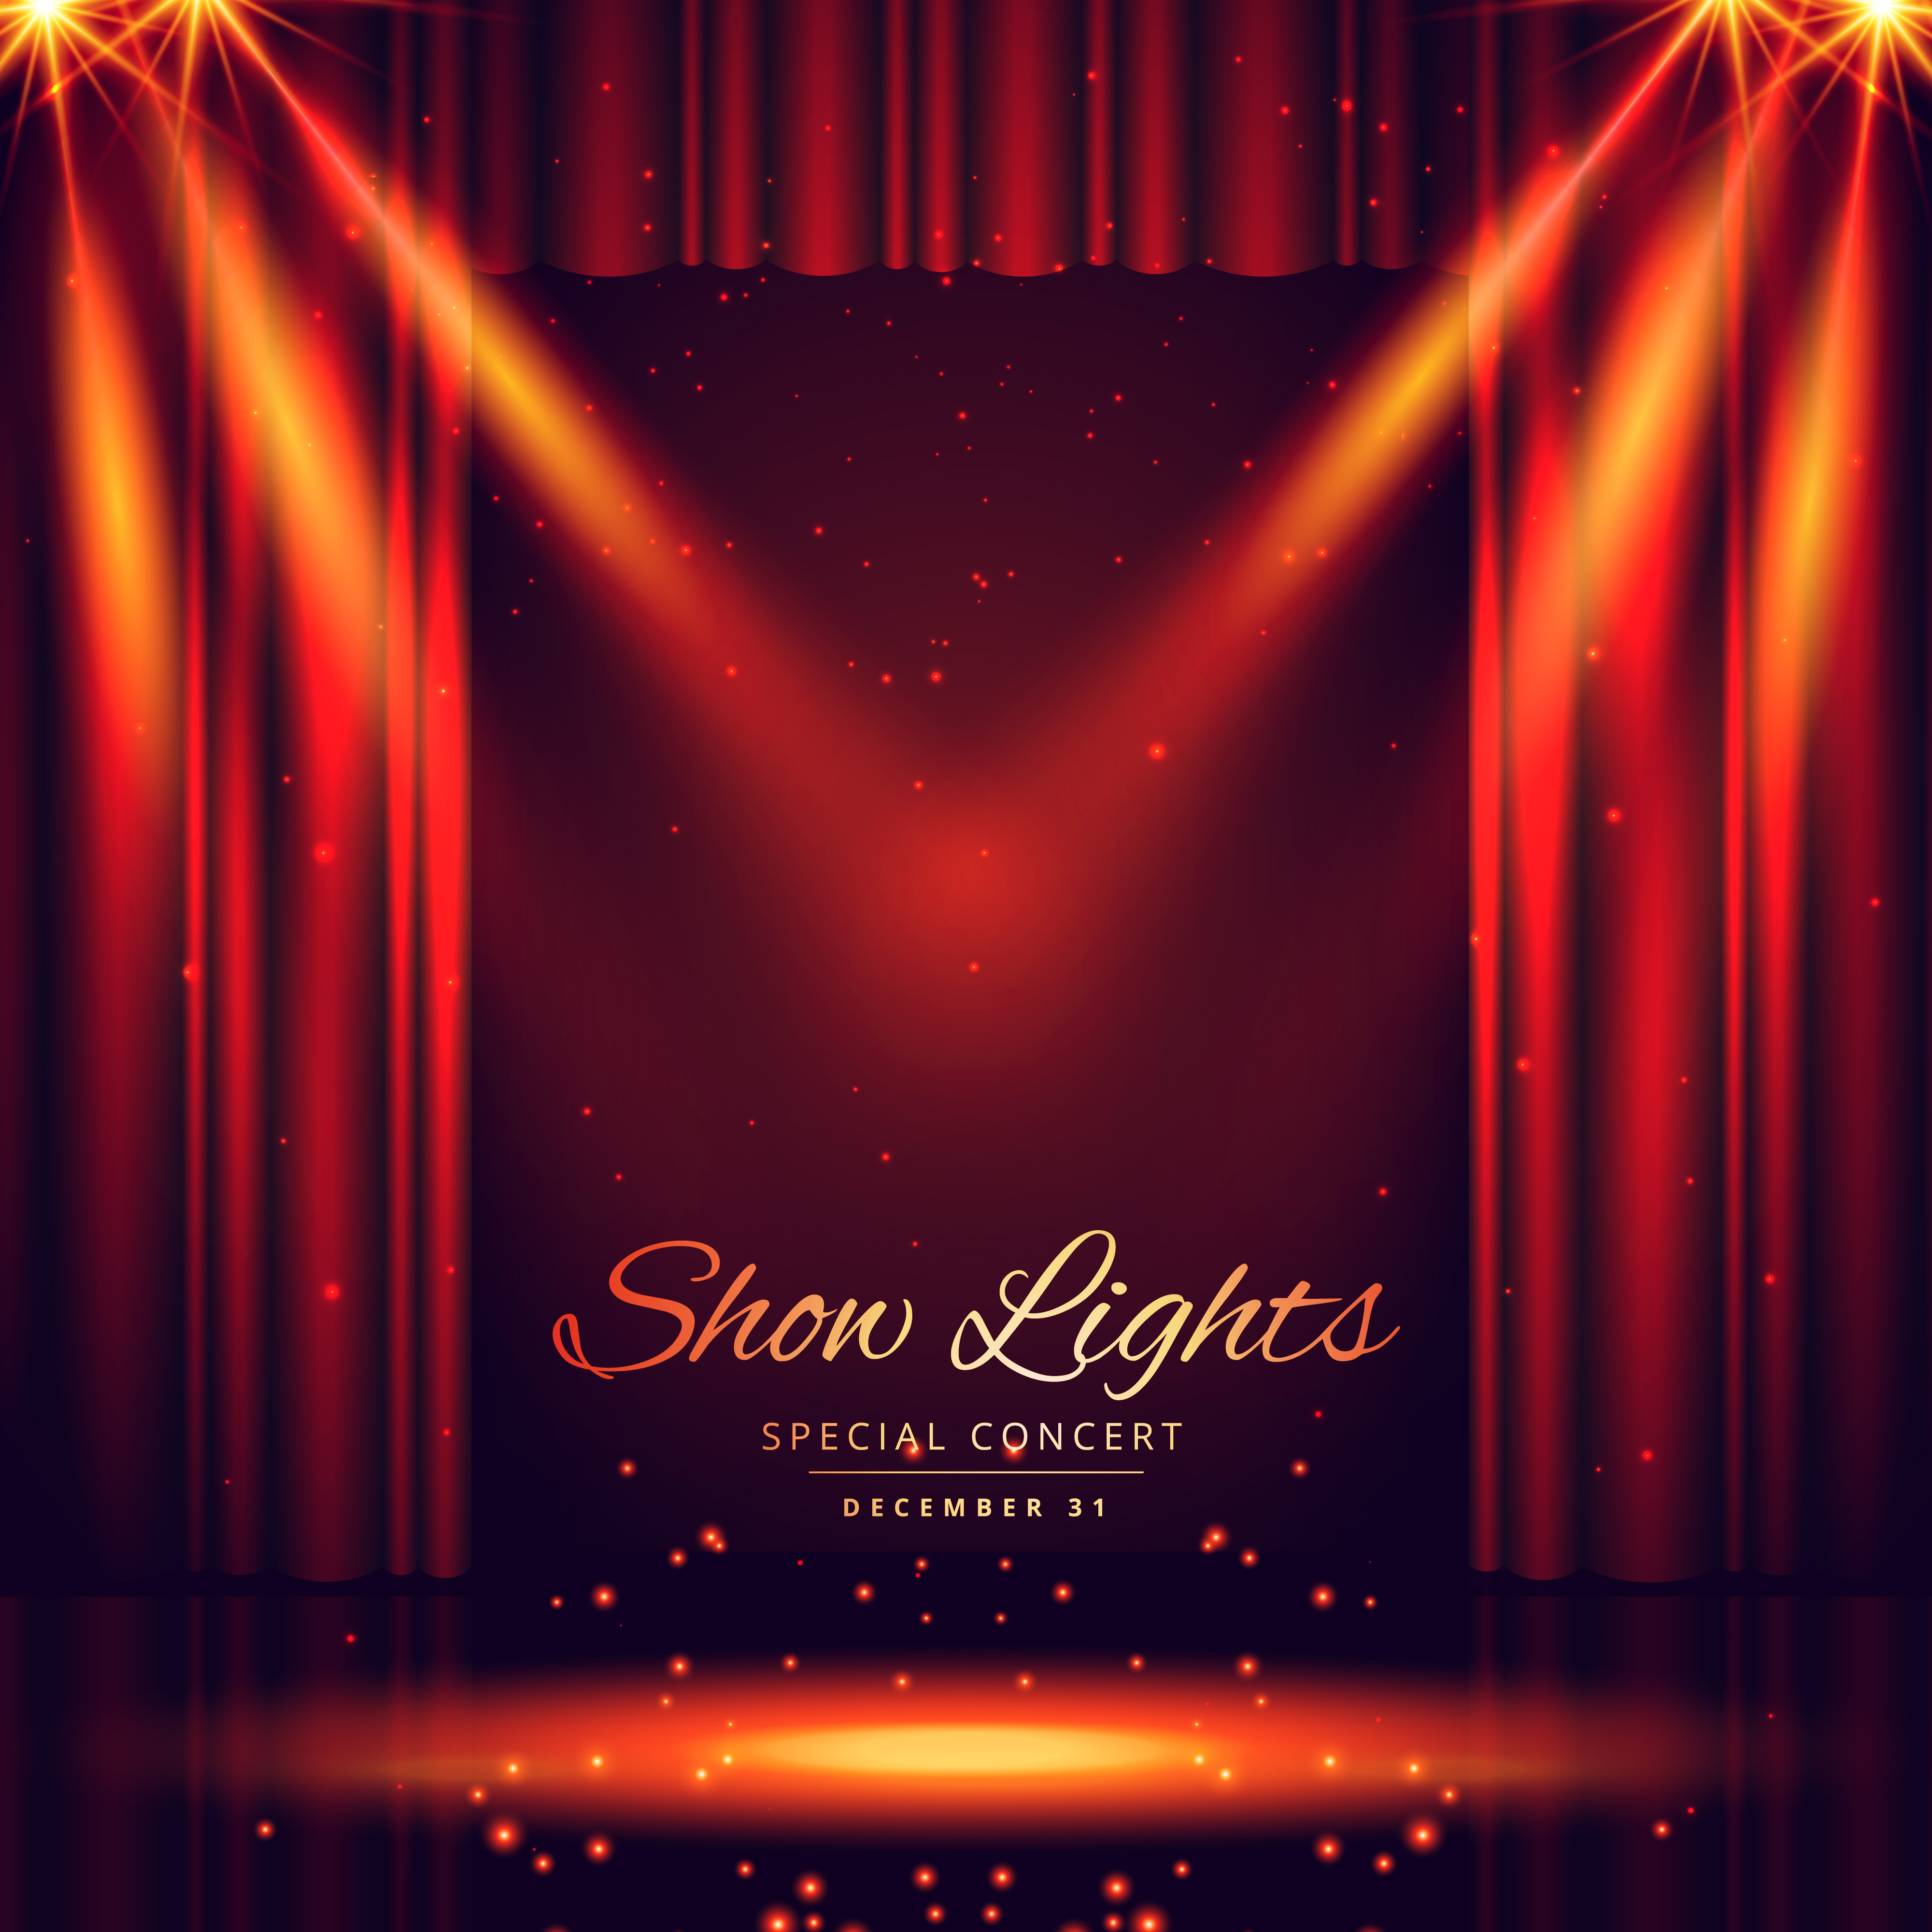 Theater Lights Background